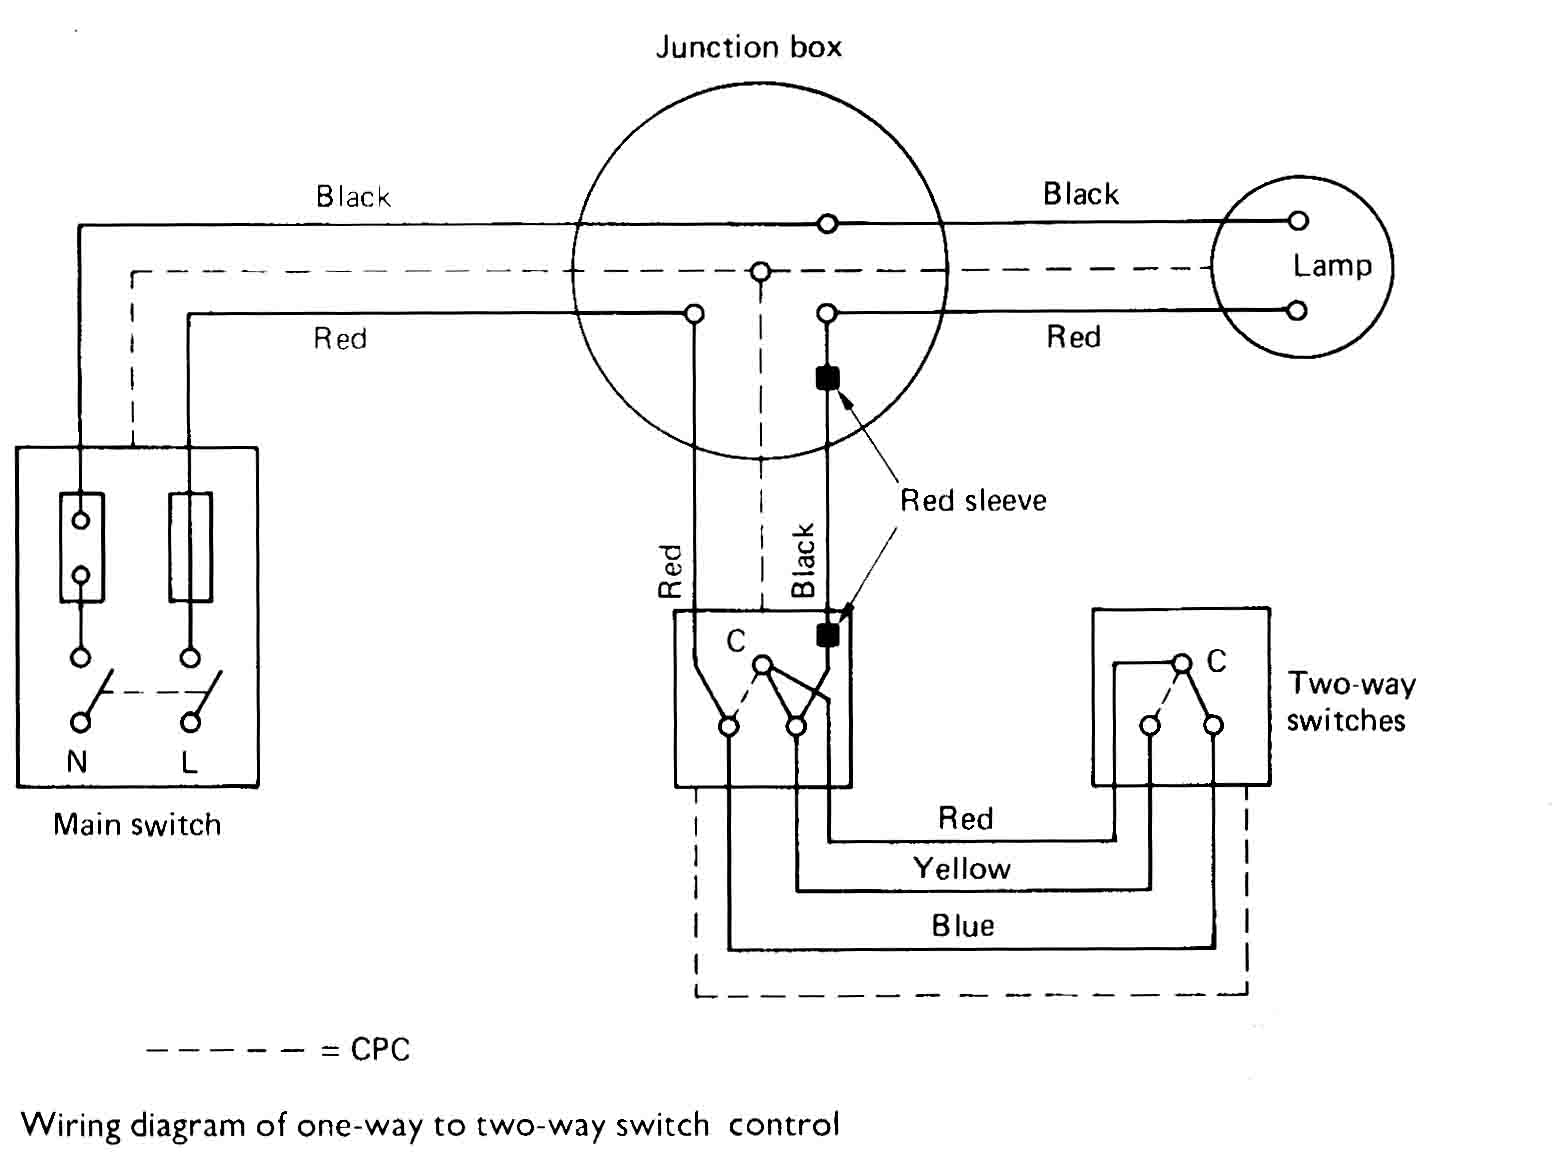 3 way dimmer switch wiring diagram uk with Two Way Lighting Circuit Wiring Diagram on Single Pole Dimmer Switch Wiring Diagram also Different From One Switch Two Lights Wiring Diagram Wires further Forum posts in addition Two Way Lighting Circuit Wiring Diagram furthermore Wiring Diagram For Wall Light Switch.